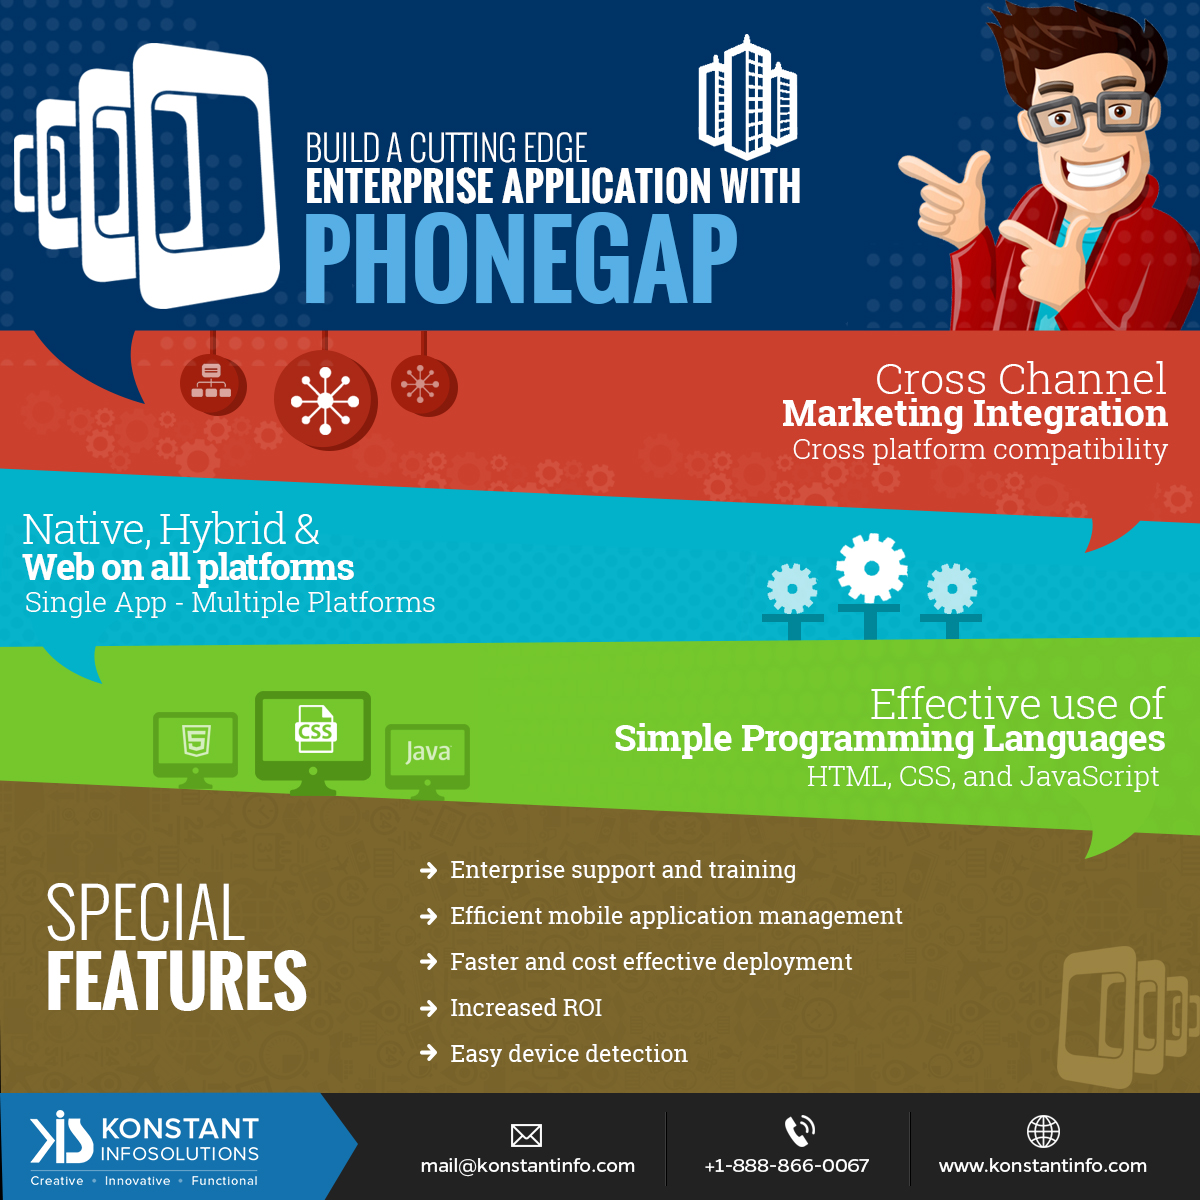 PhoneGap Application Development Services